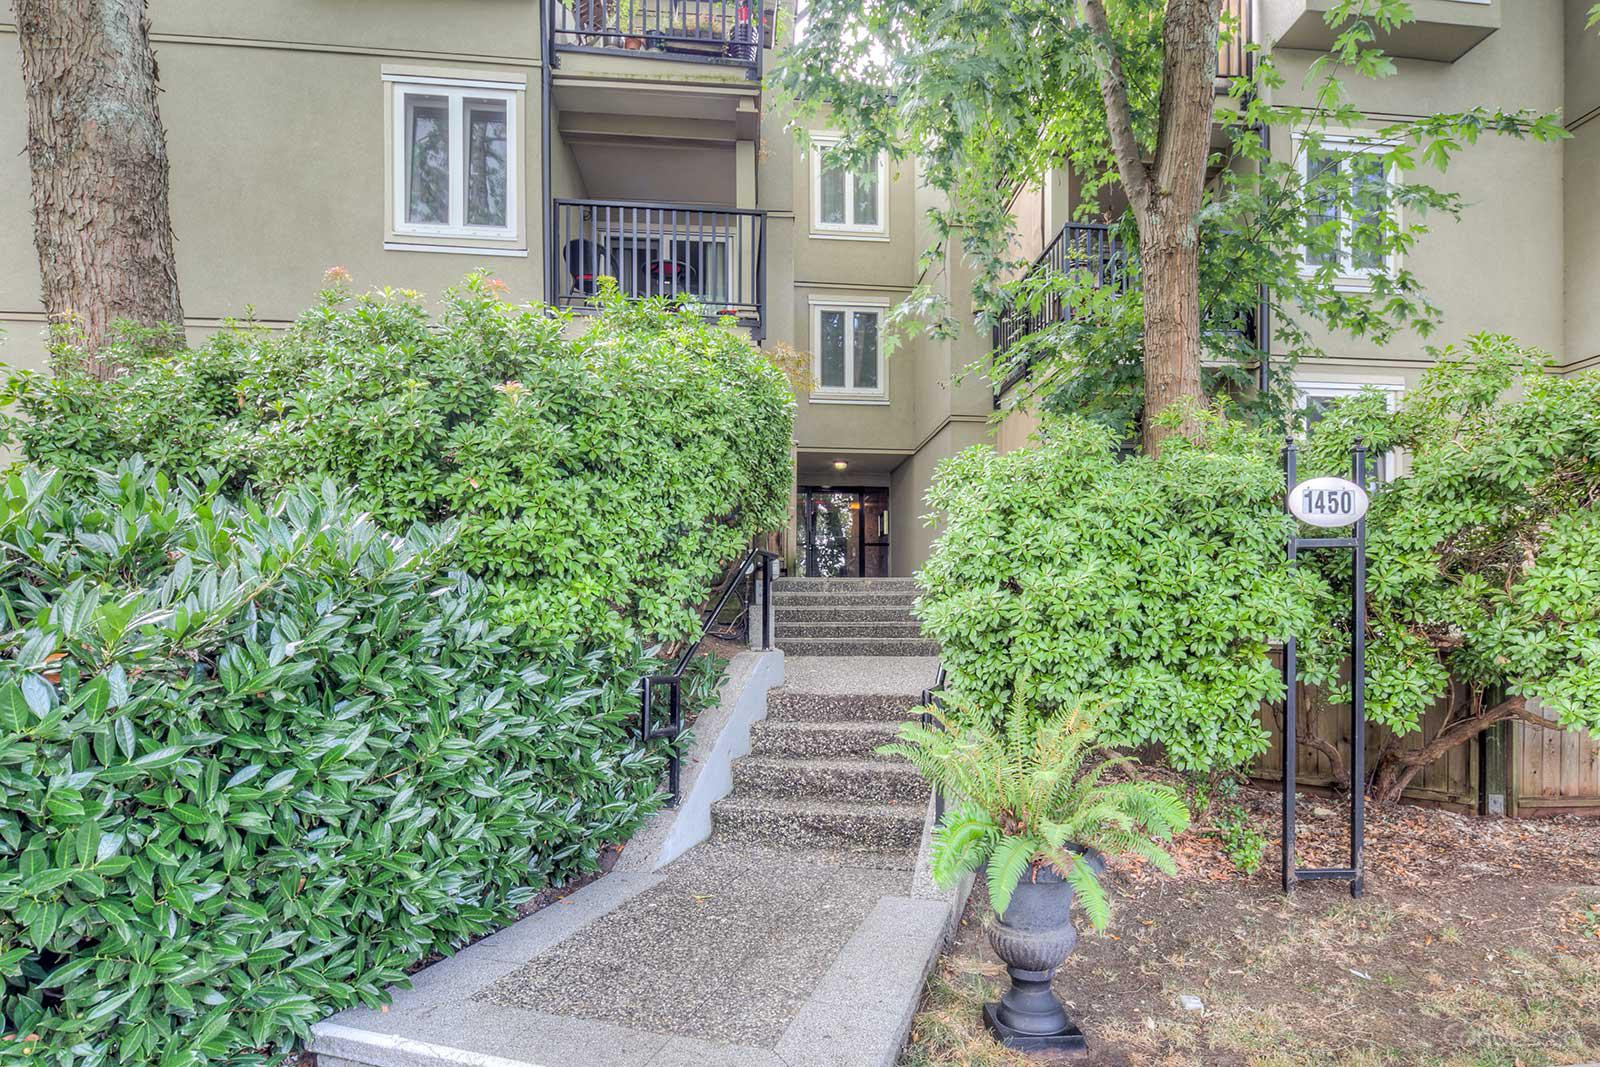 Ridgeway Place at 1450 E 7th Ave, Vancouver 1